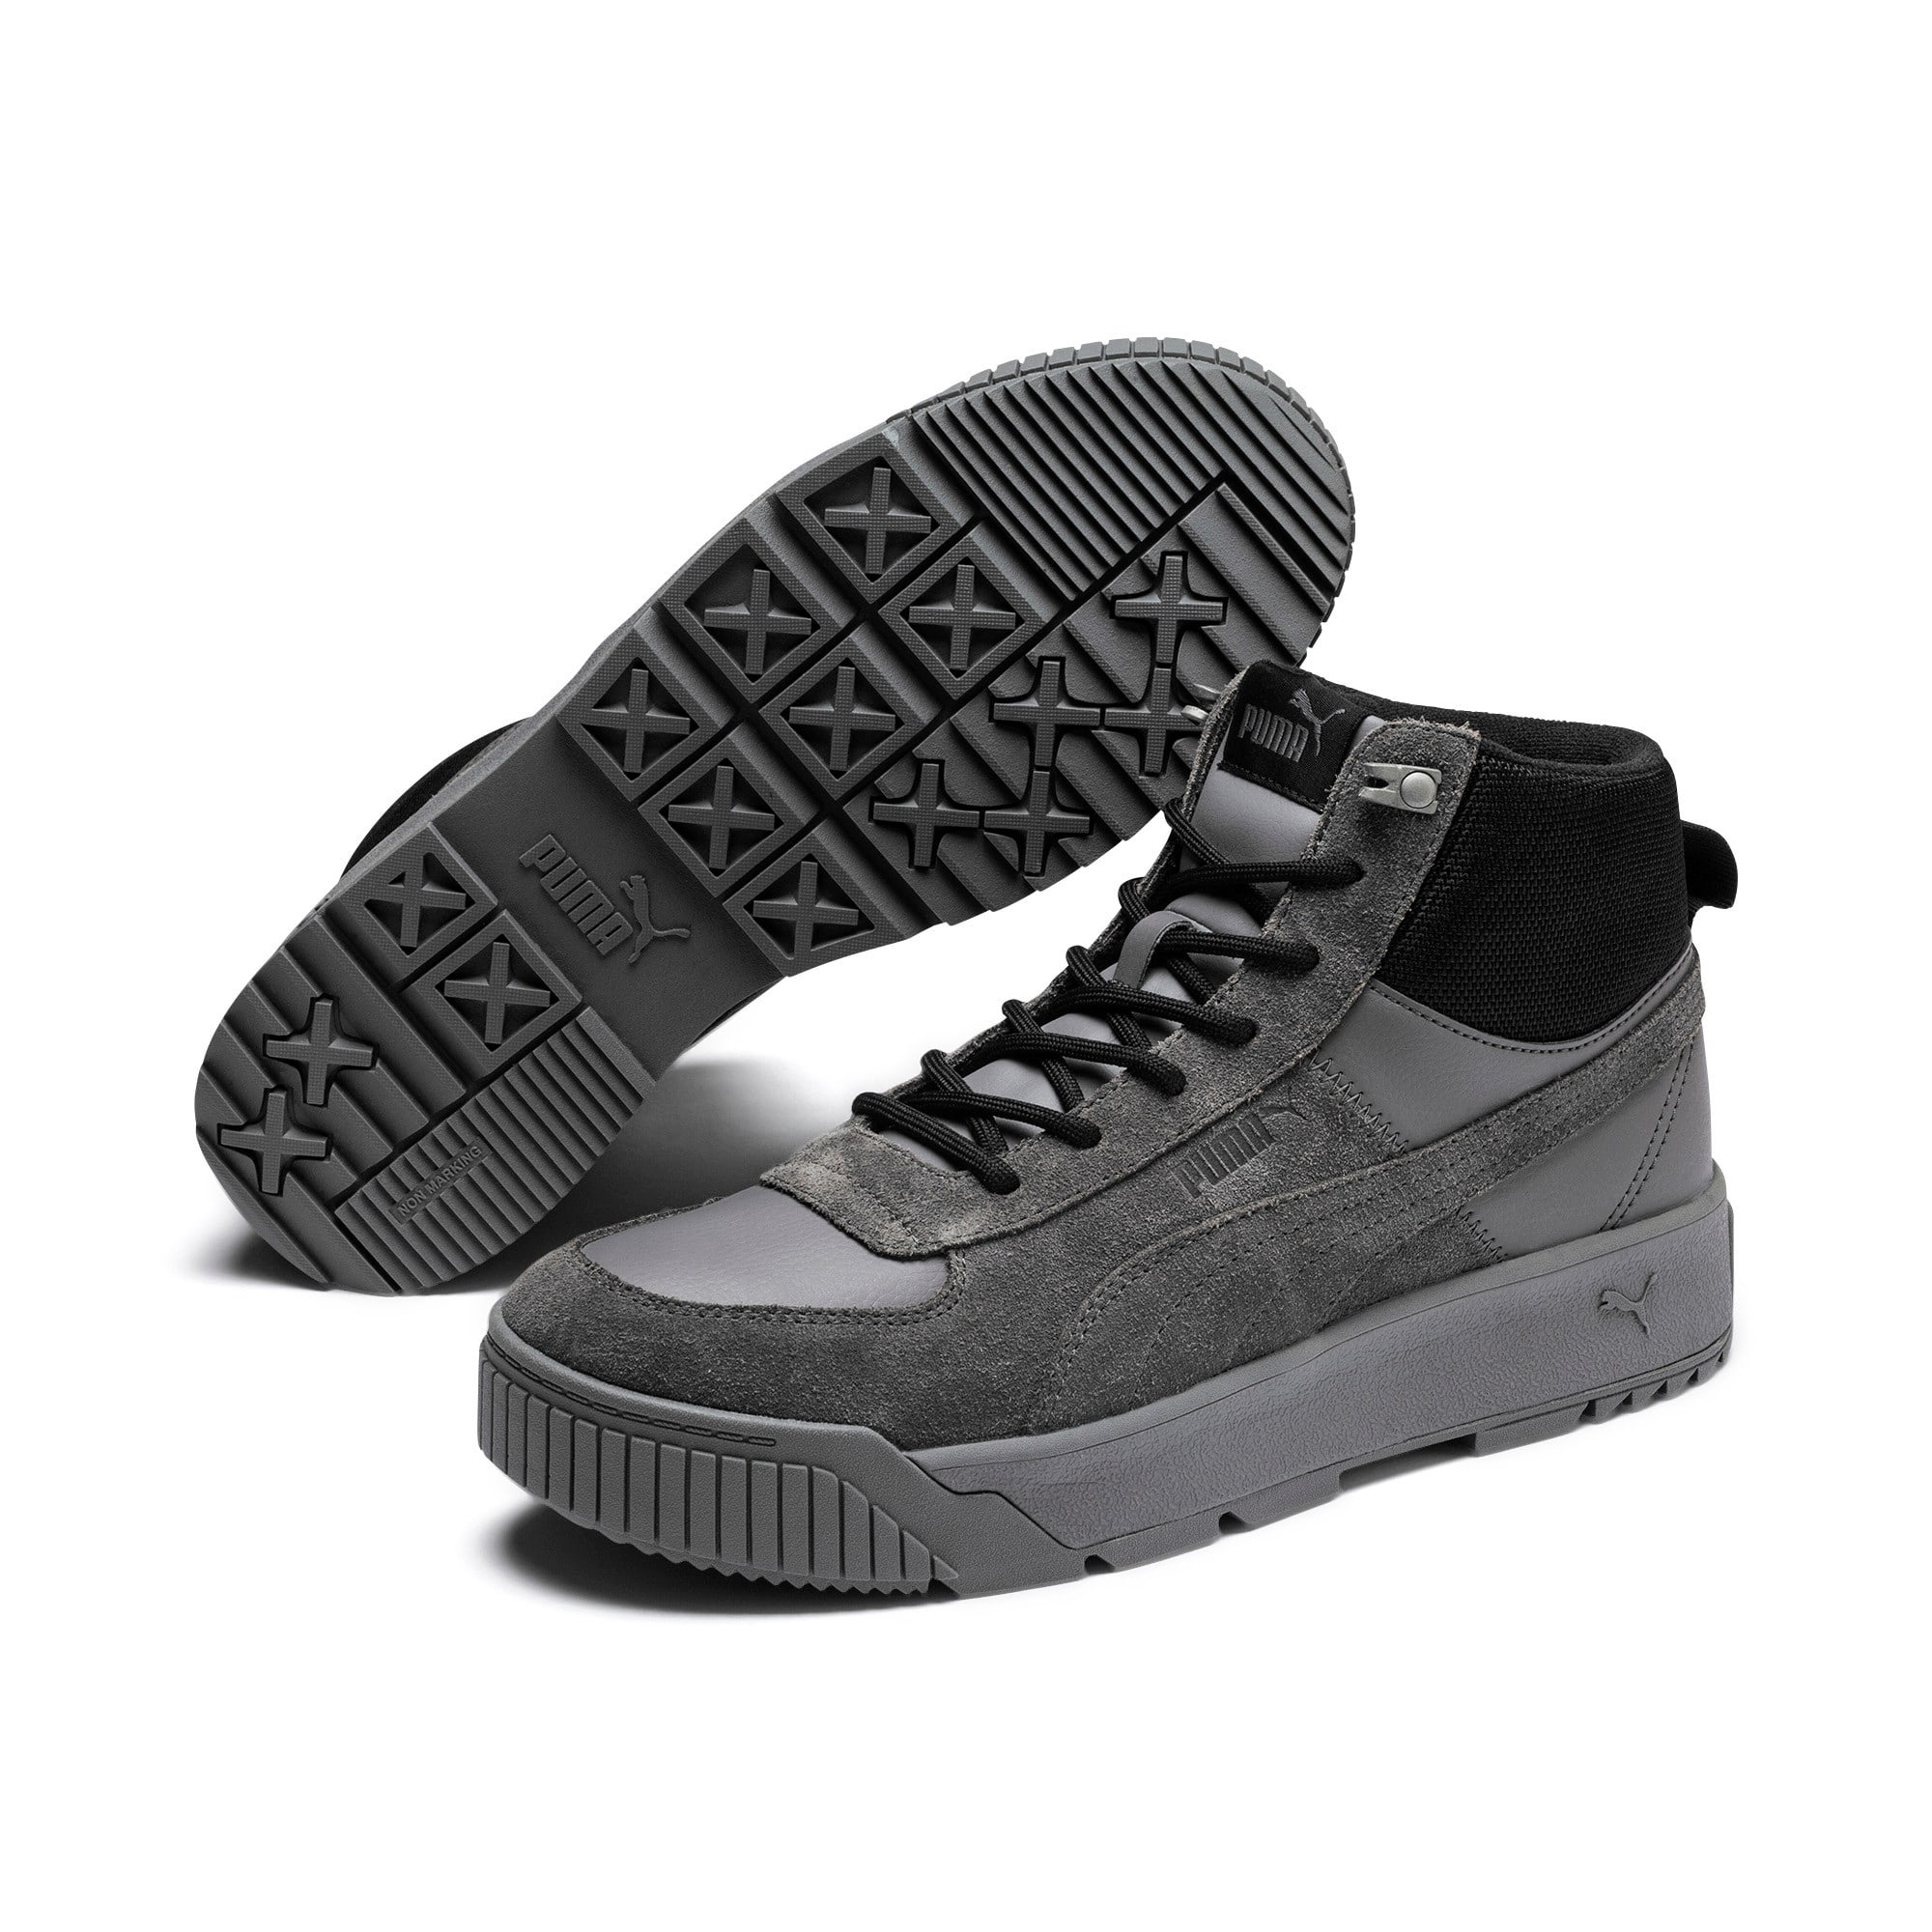 Thumbnail 3 of Tarrenz Sneaker Boots, CASTLEROCK-Puma Black, medium